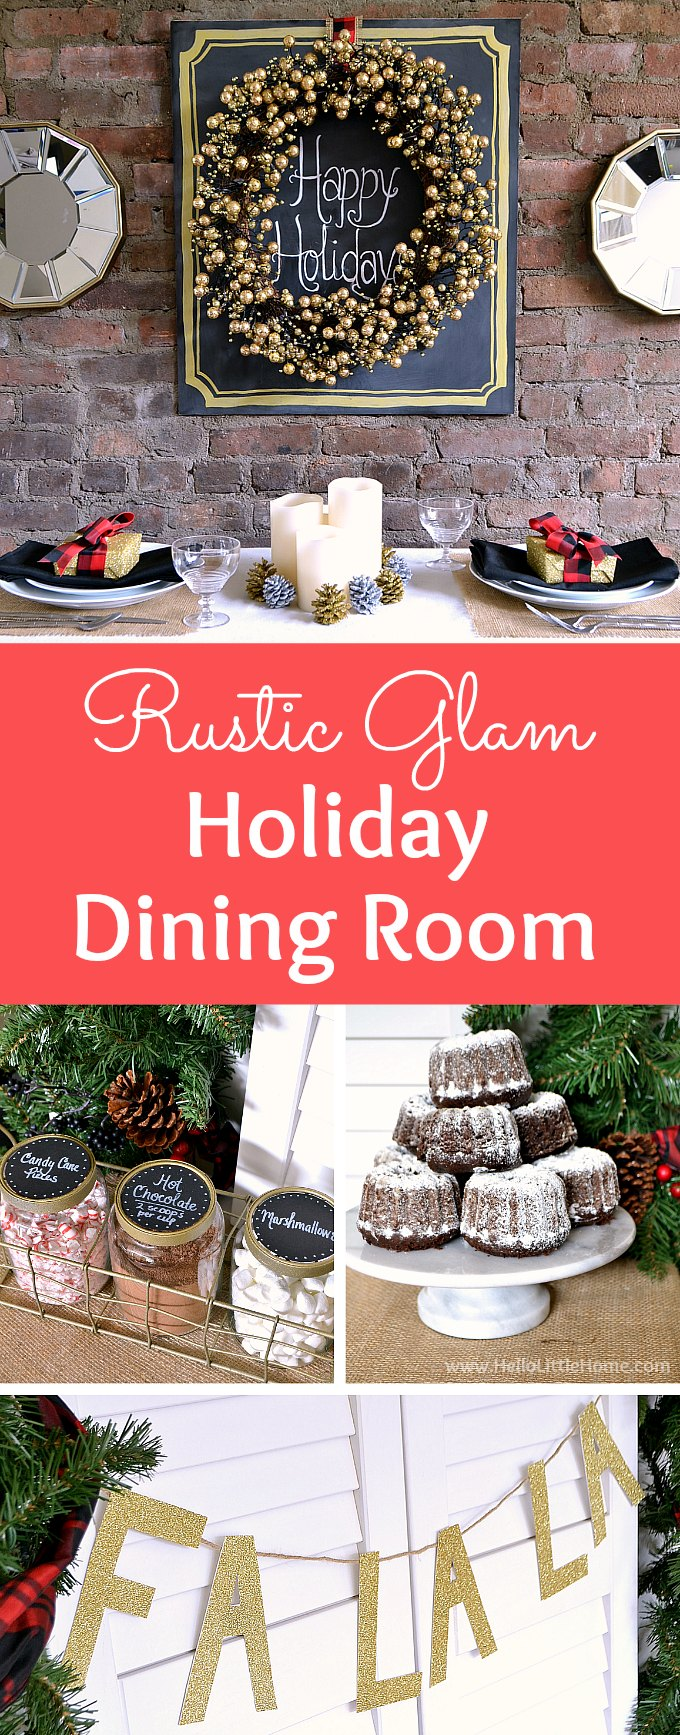 Rustic Glam Holiday Dining Room! Create a beautiful modern rustic space with these easy tips and tricks and DIY projects! These rustic glam Christmas decor ideas are perfect for small spaces. Featuring a rustic glam tablescape with burlap, plaid, and a little glitter, plus a holiday buffet table and rustic glam place settings that will add sparkle to your holiday party. | Hello Little Home